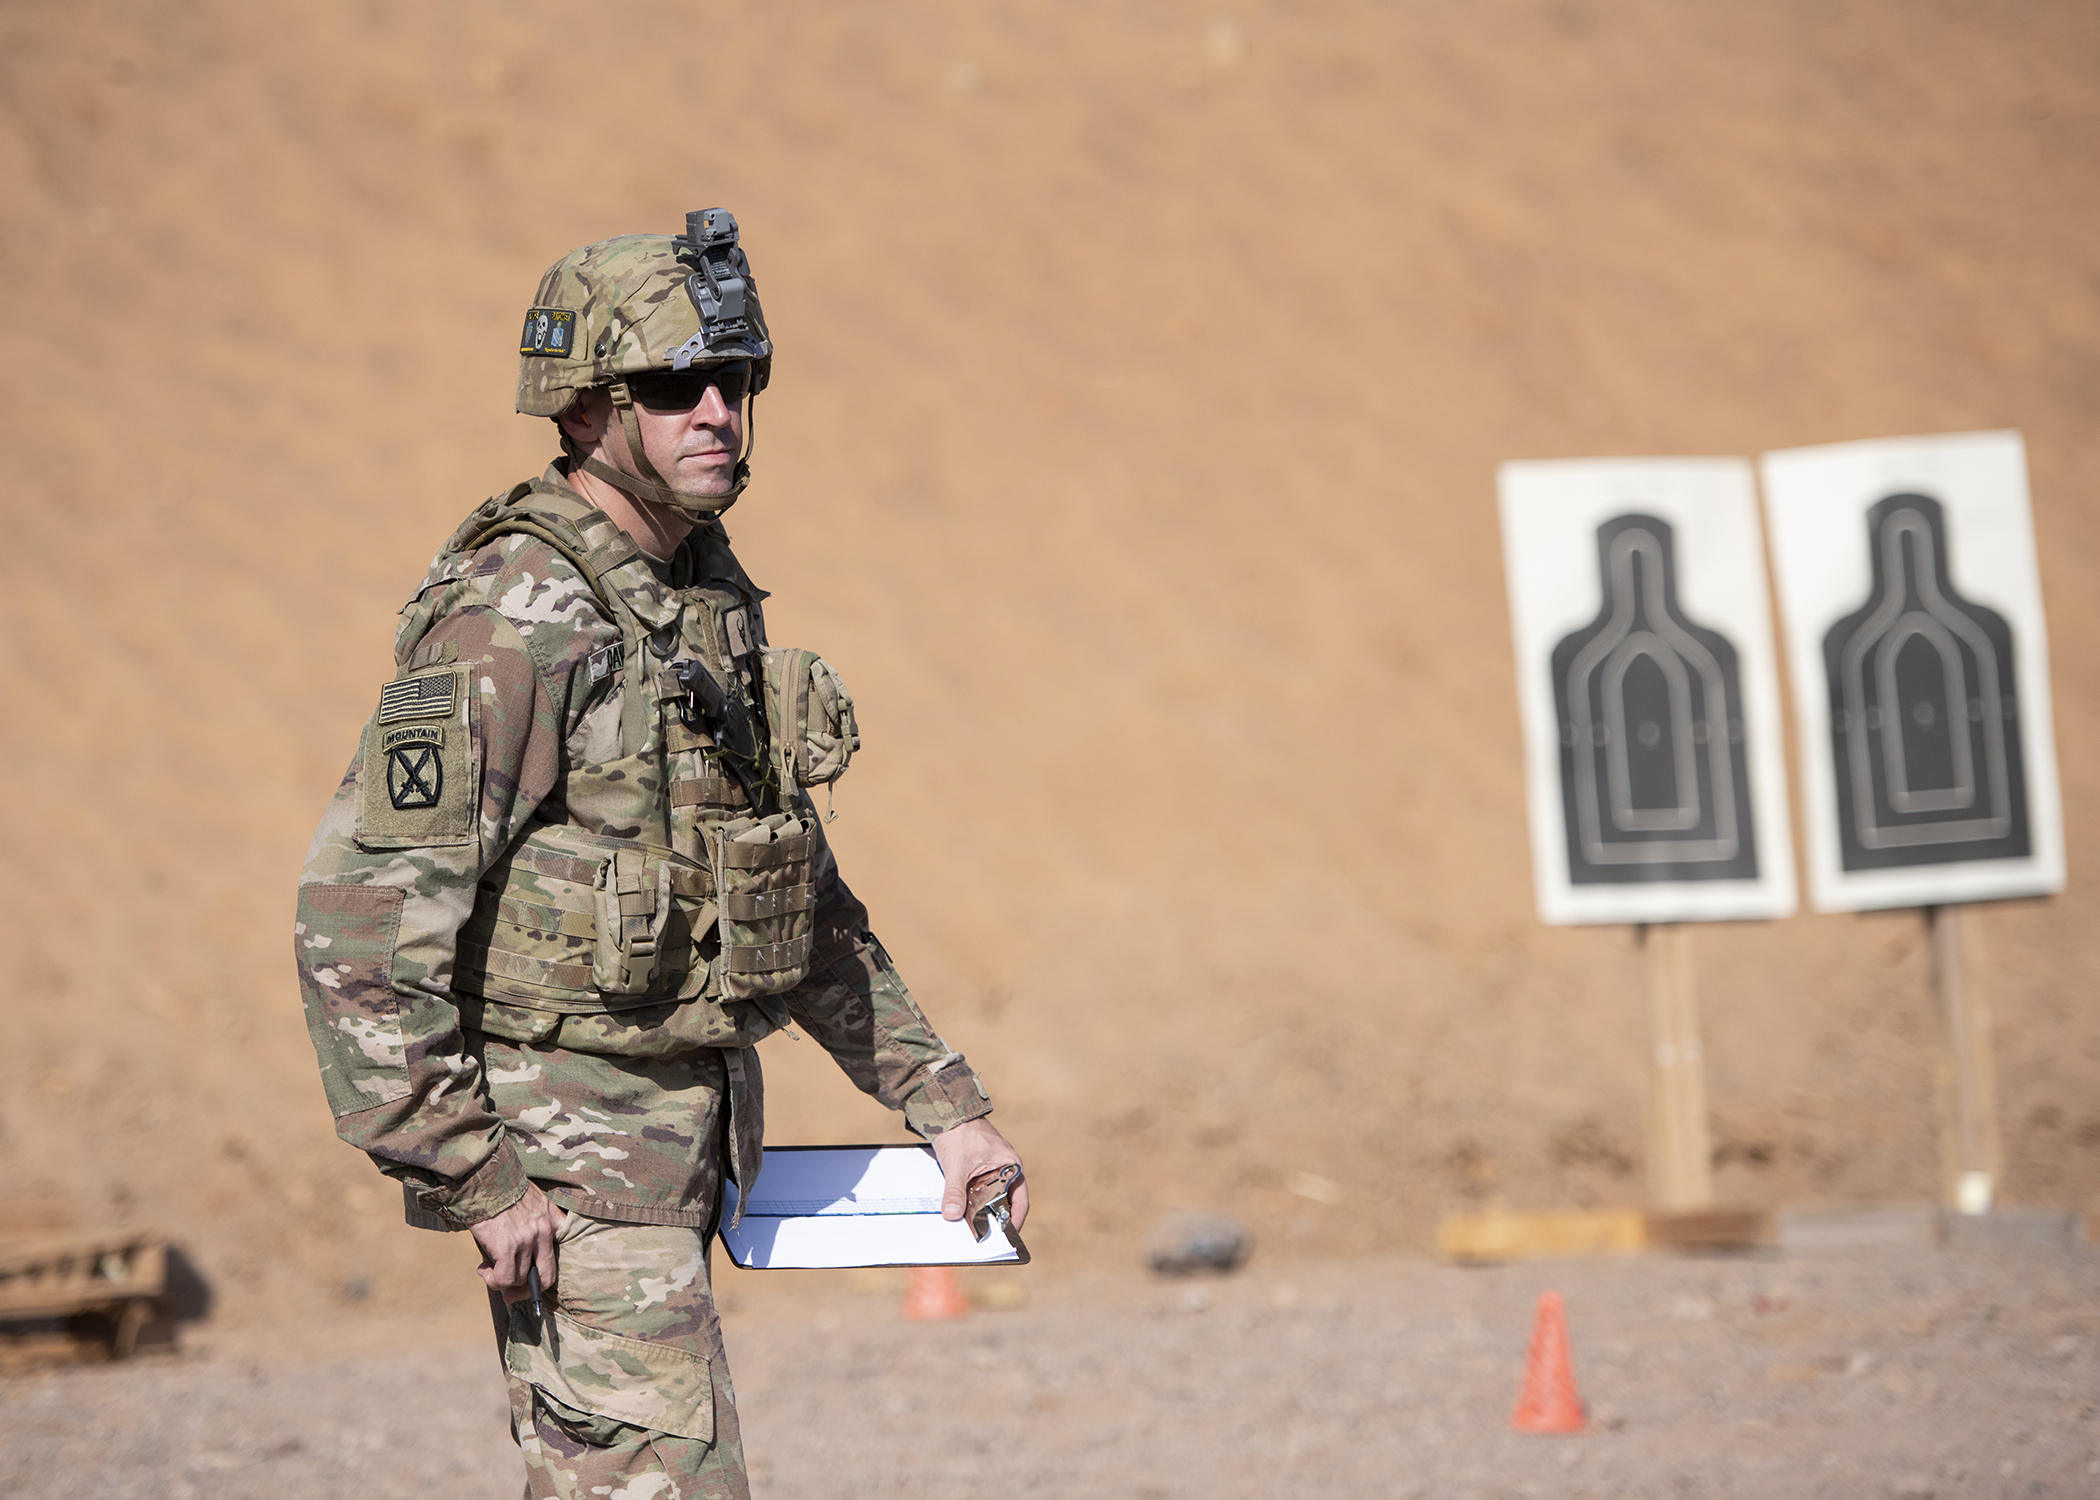 A U.S. Army Soldier from 1-141 Infantry Regiment, Task Force Alamo, Texas National Guard, assigned to Combined Joint Task Force-Horn of Africa, officiates the official marksmanship portion of the German Armed Forces Badge for military proficiency at the Arta Range Complex, Djibouti, Jan. 17, 2019. Competing for the badge offered a unique opportunity to Soldiers and worked as an information exchange between the U.S. and Germany militaries. (U.S. Air Force photo by Tech. Sgt. Shawn Nickel)